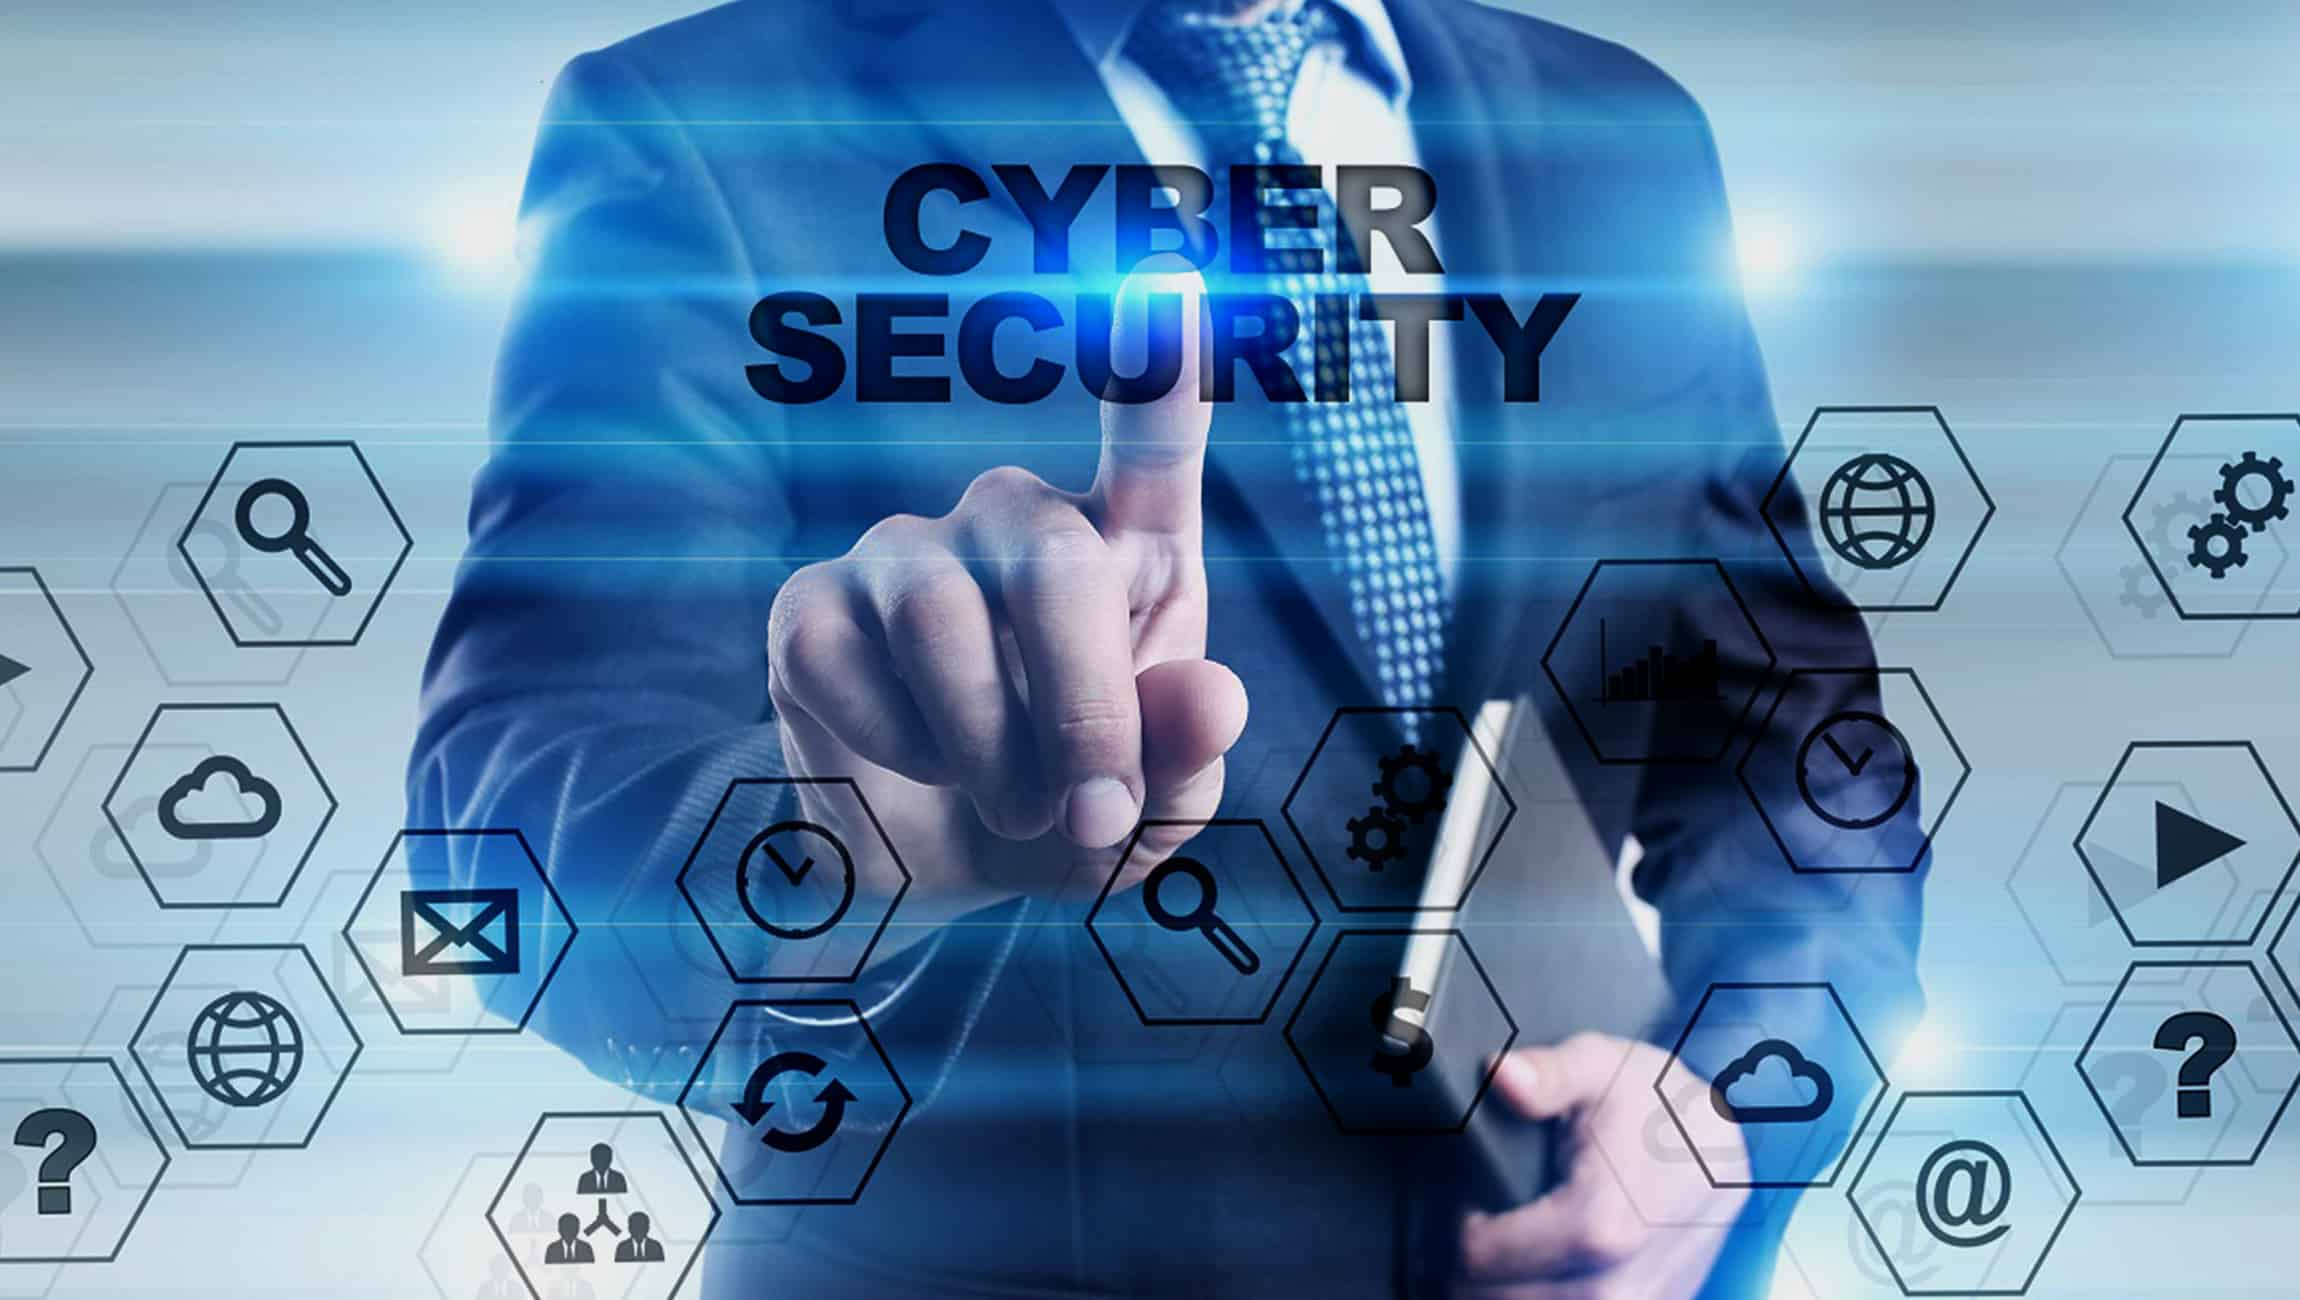 Cybersecurity best practices that every employee should know